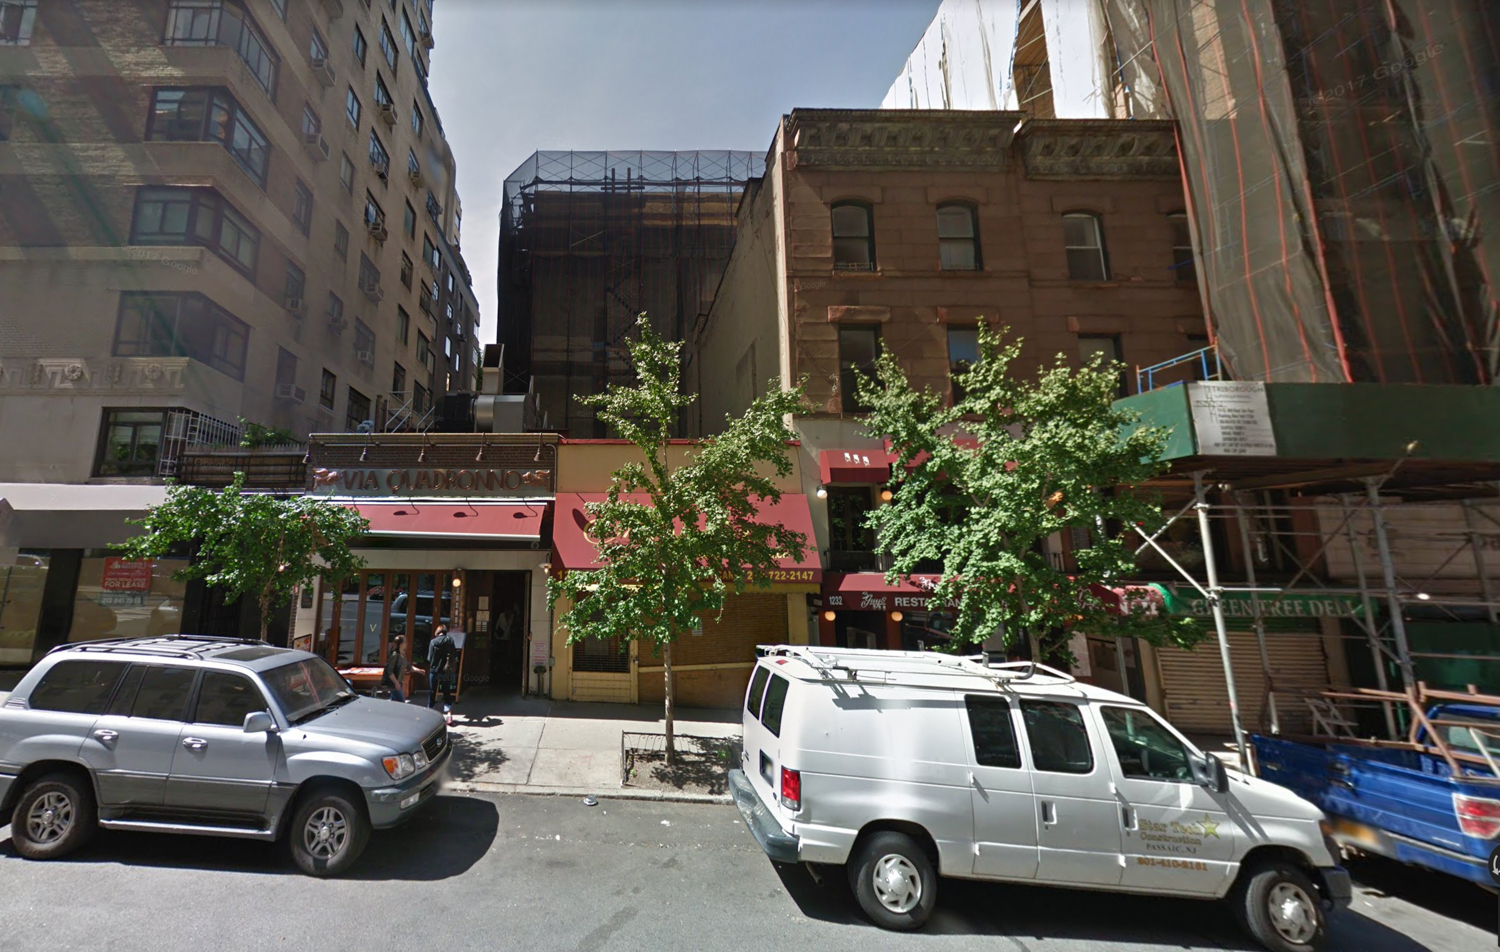 1228-1234 Madison Avenue, via Google Maps